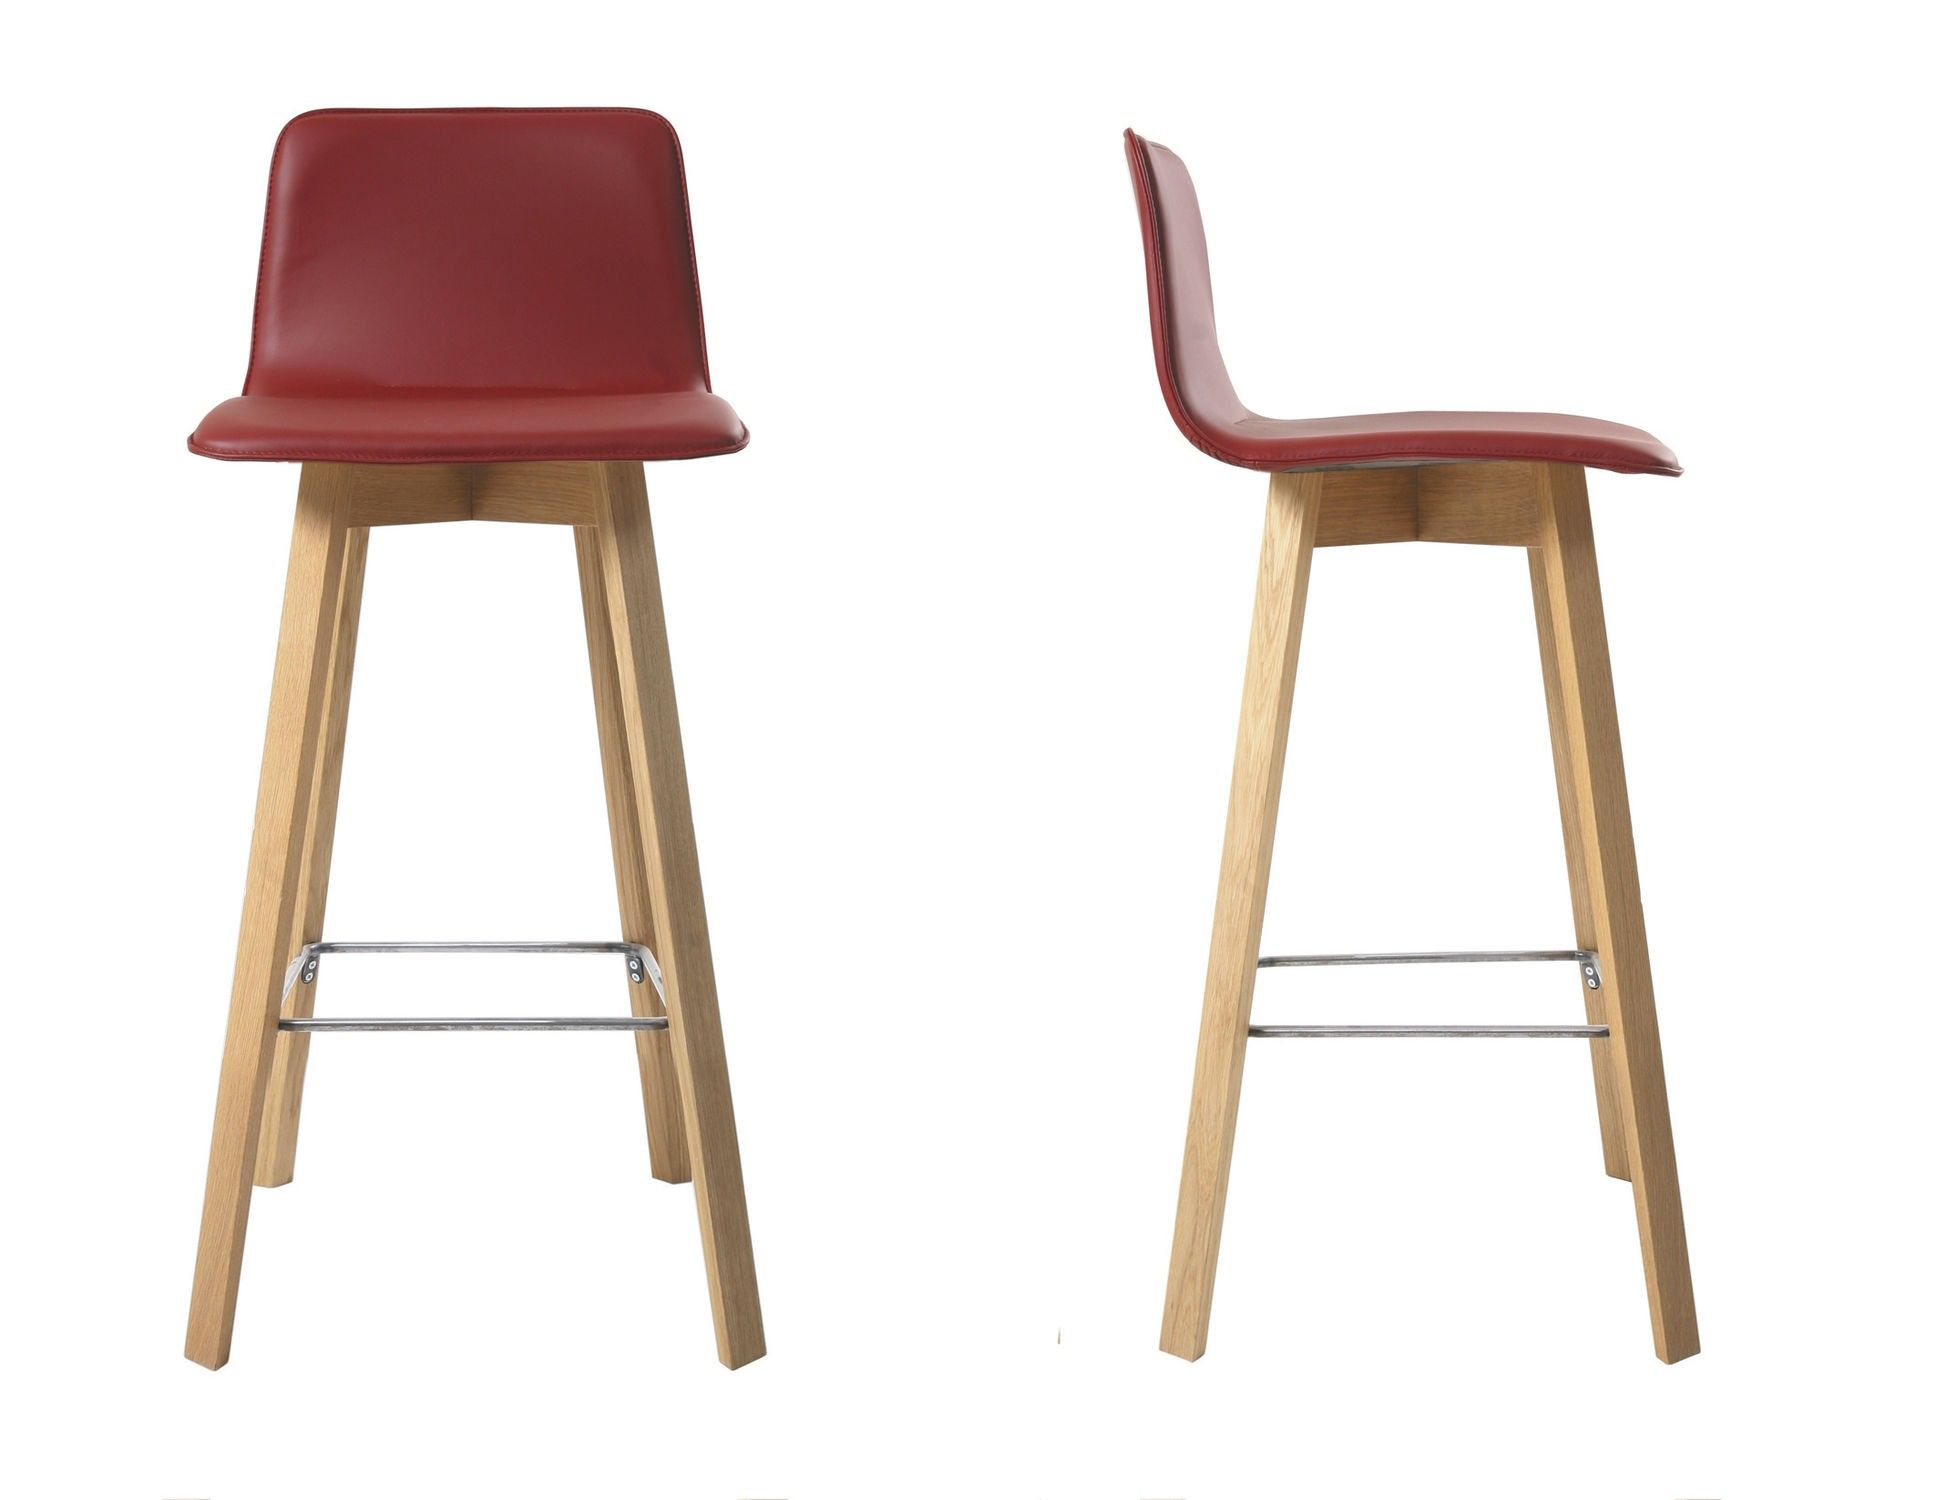 Kitchen Stools With Backs Contemporary Wooden Upholstered